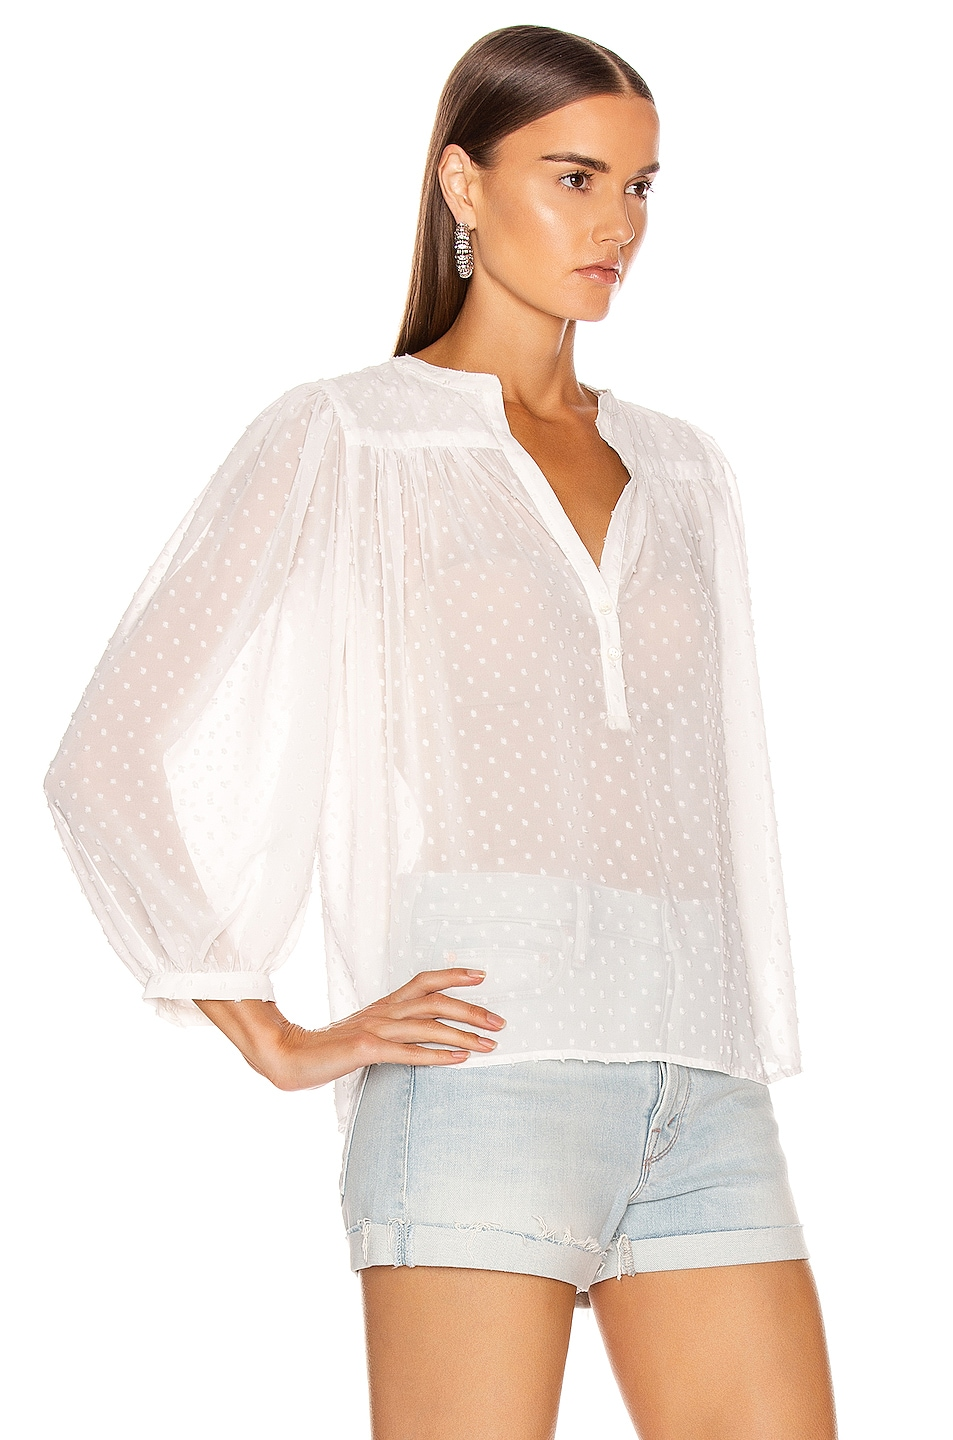 Image 2 of ICONS Objects of Devotion The Modern Poet Top in White